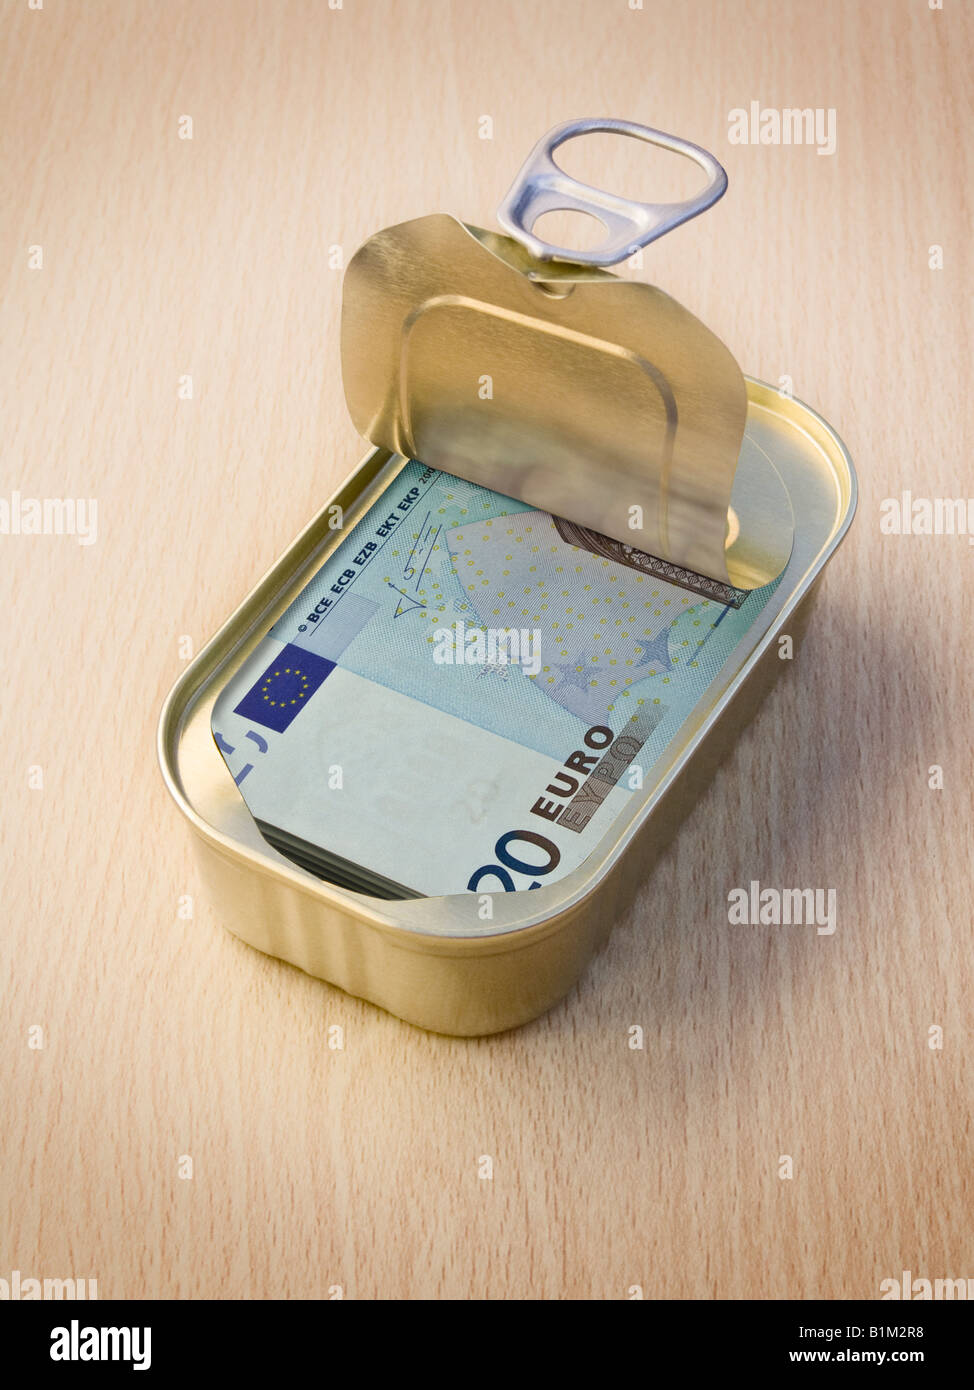 Ring Pull Tin containing 20 Euro notes on wooden surface - Concept Stock Photo